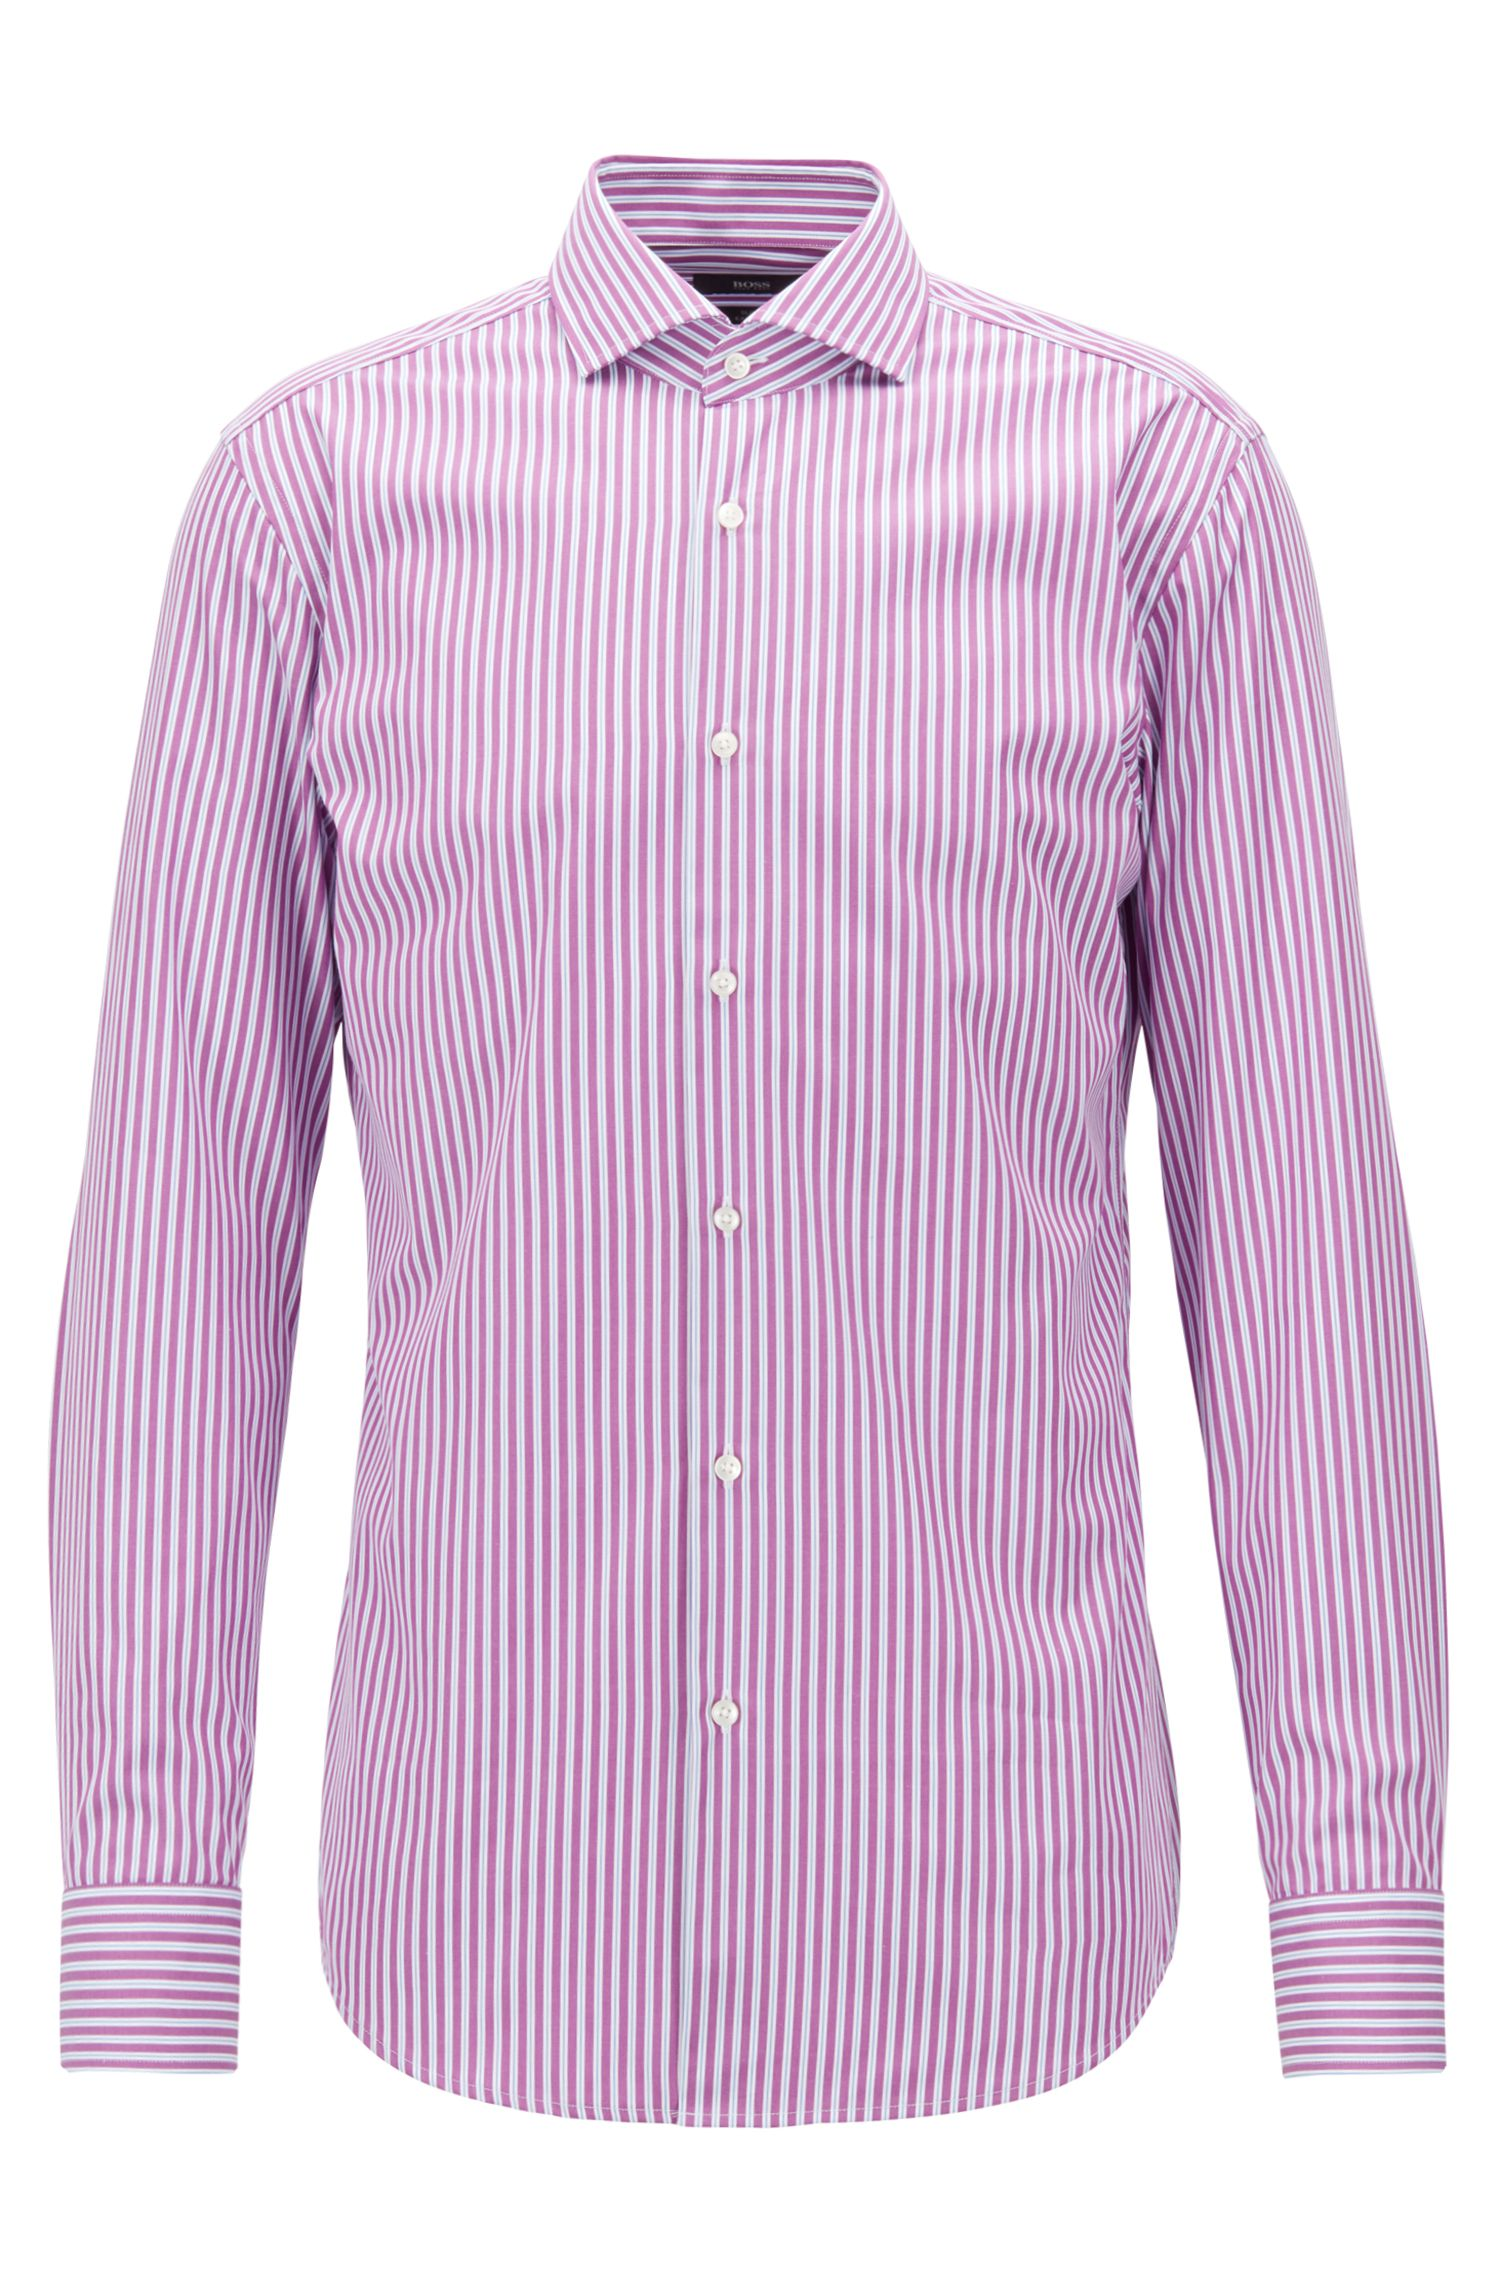 Camicia slim fit in popeline di cotone a righe facile da stirare, Rosa scuro